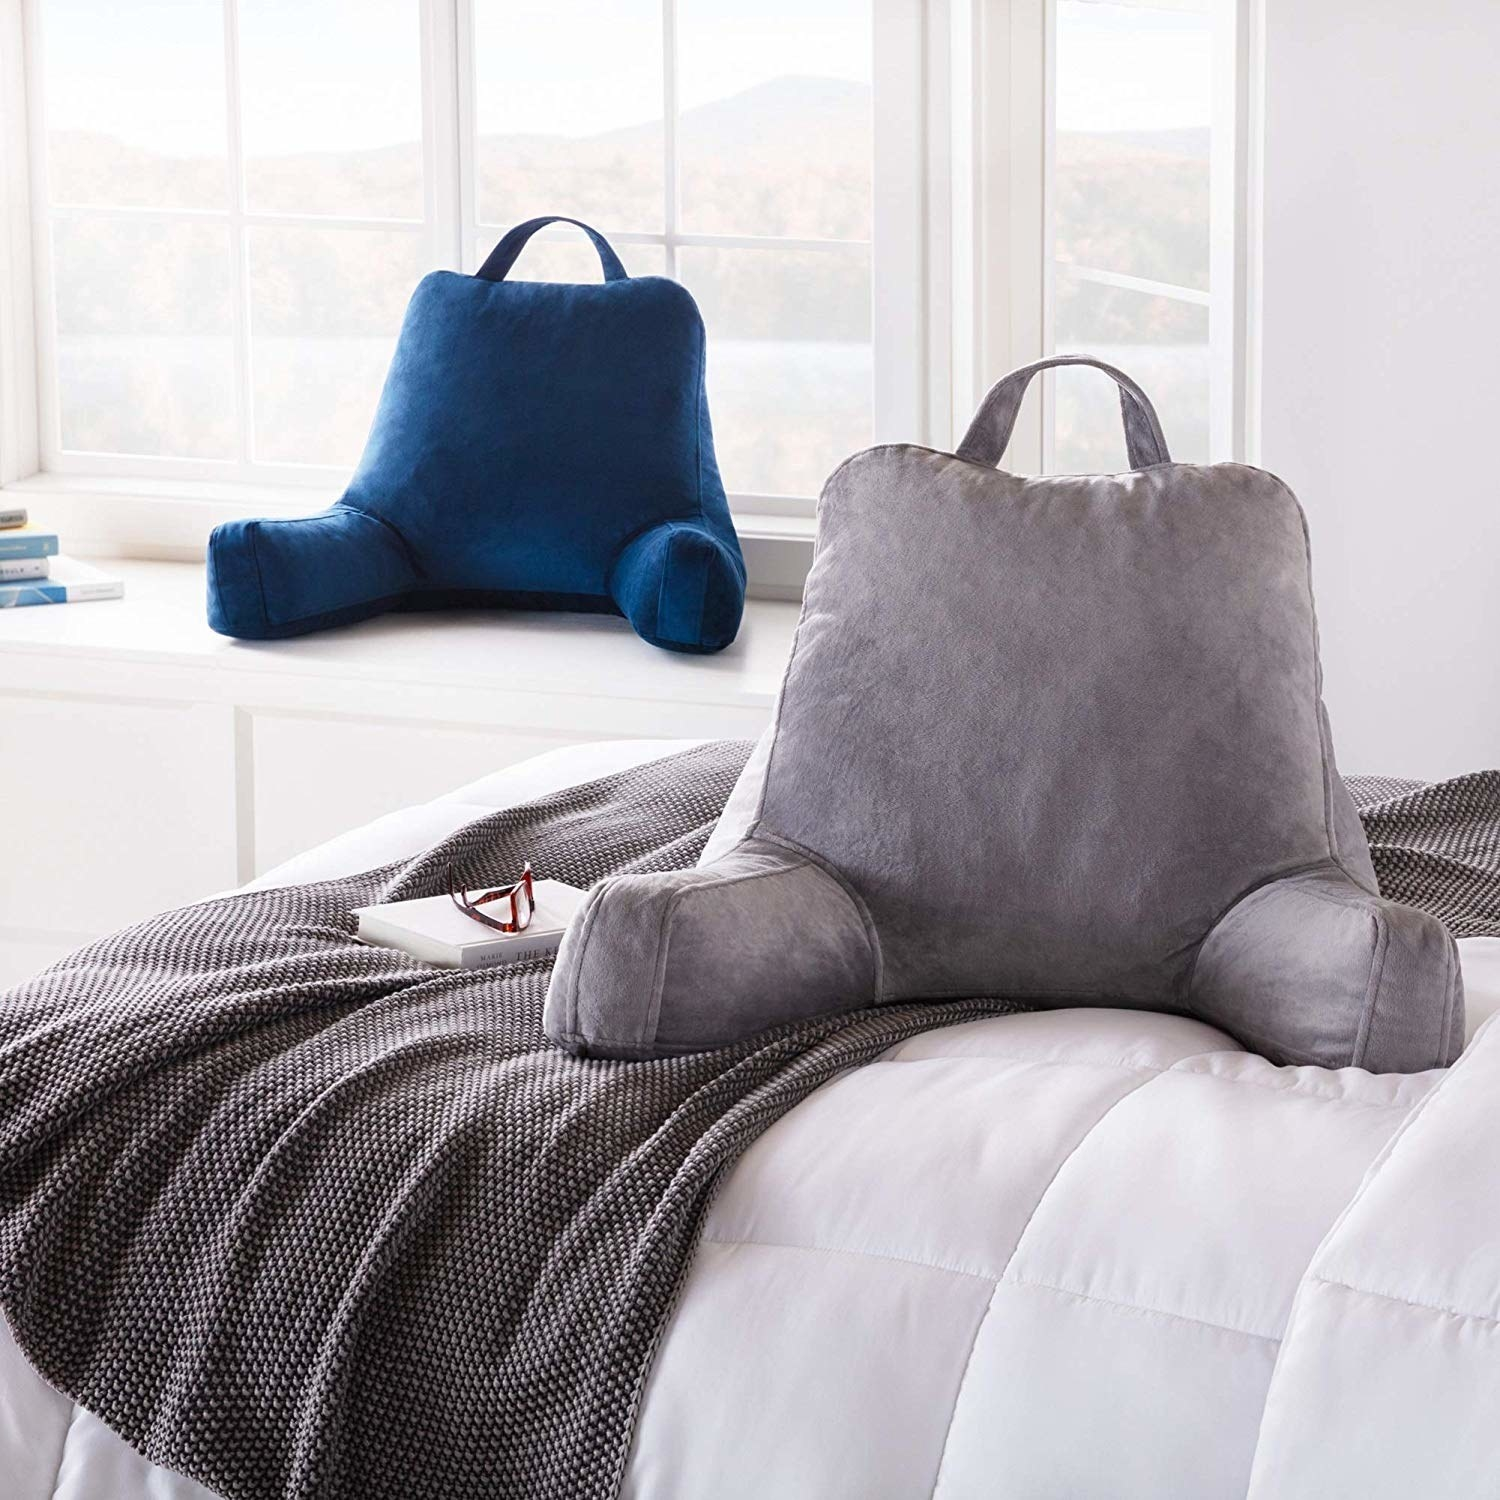 The foam pillows, featuring support arms and velour covers, in gray and navy